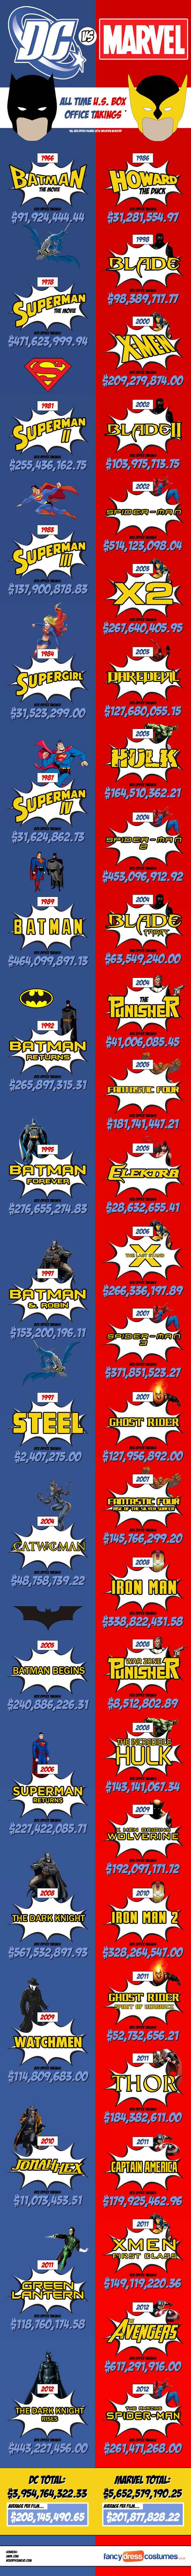 Marvel Vs. DC At The U.S. Box Office